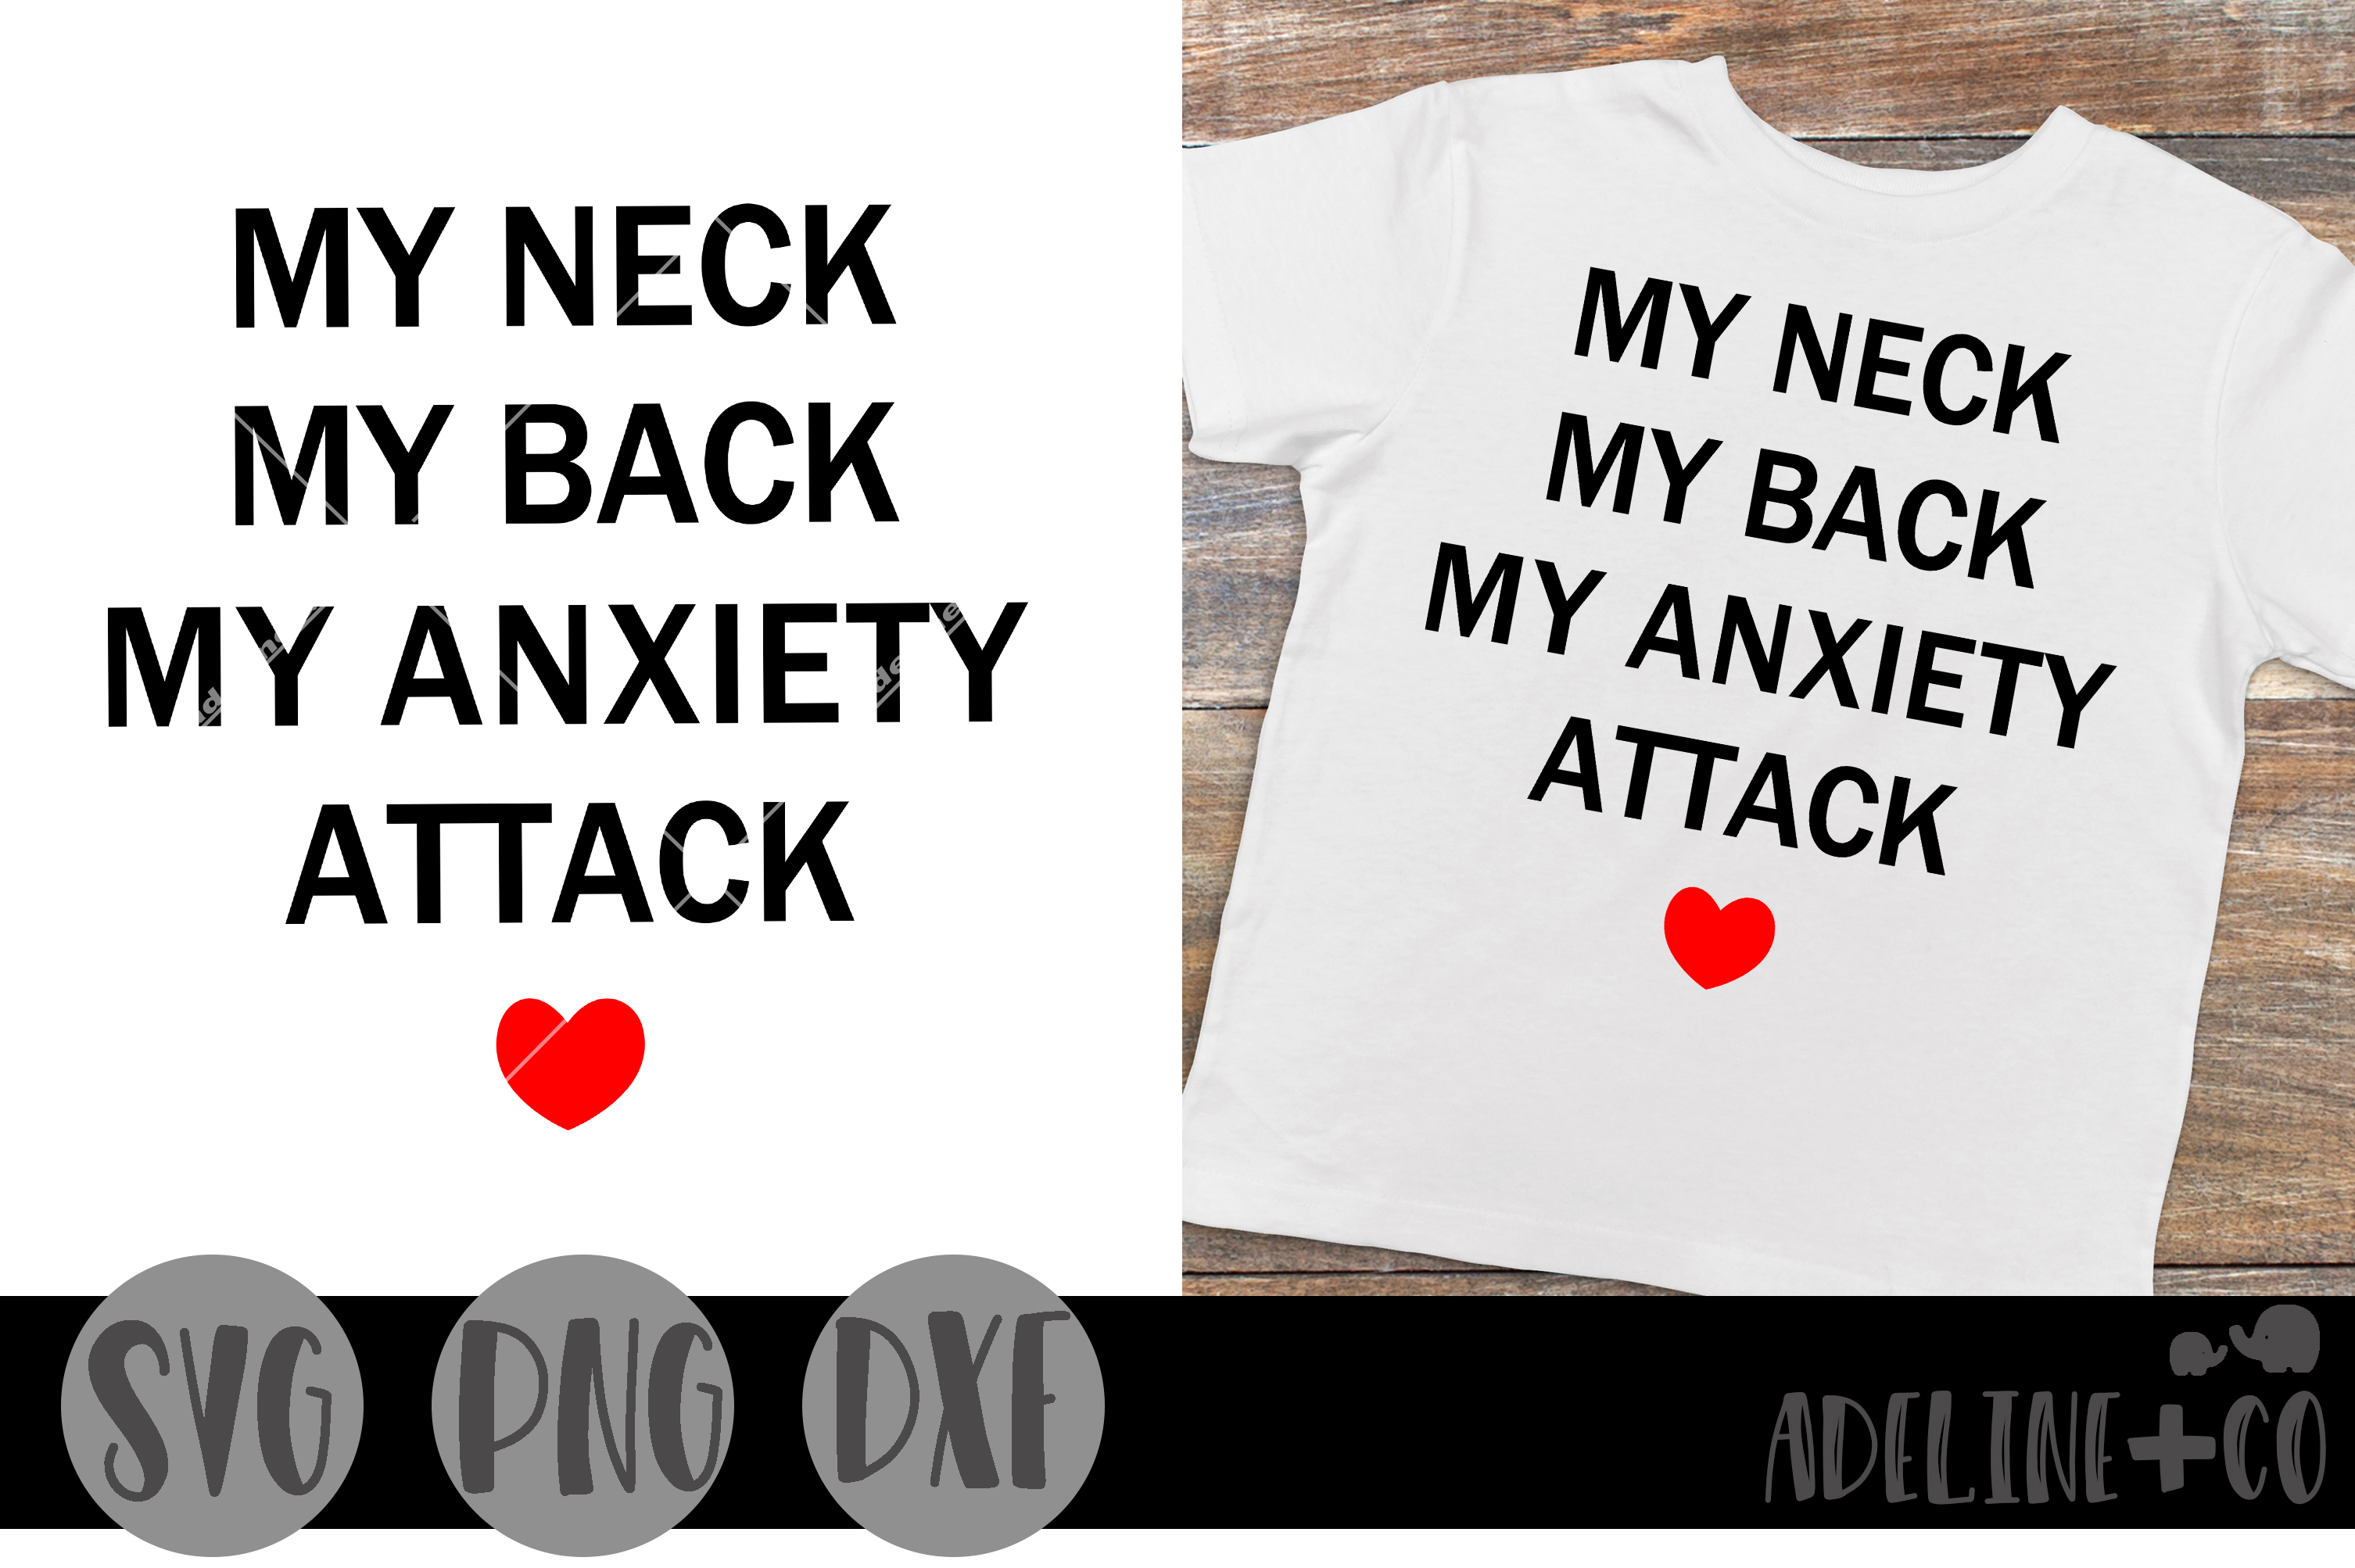 Download Free My Neck My Back My Anxiety Attack Graphic By Adelinenco SVG Cut Files